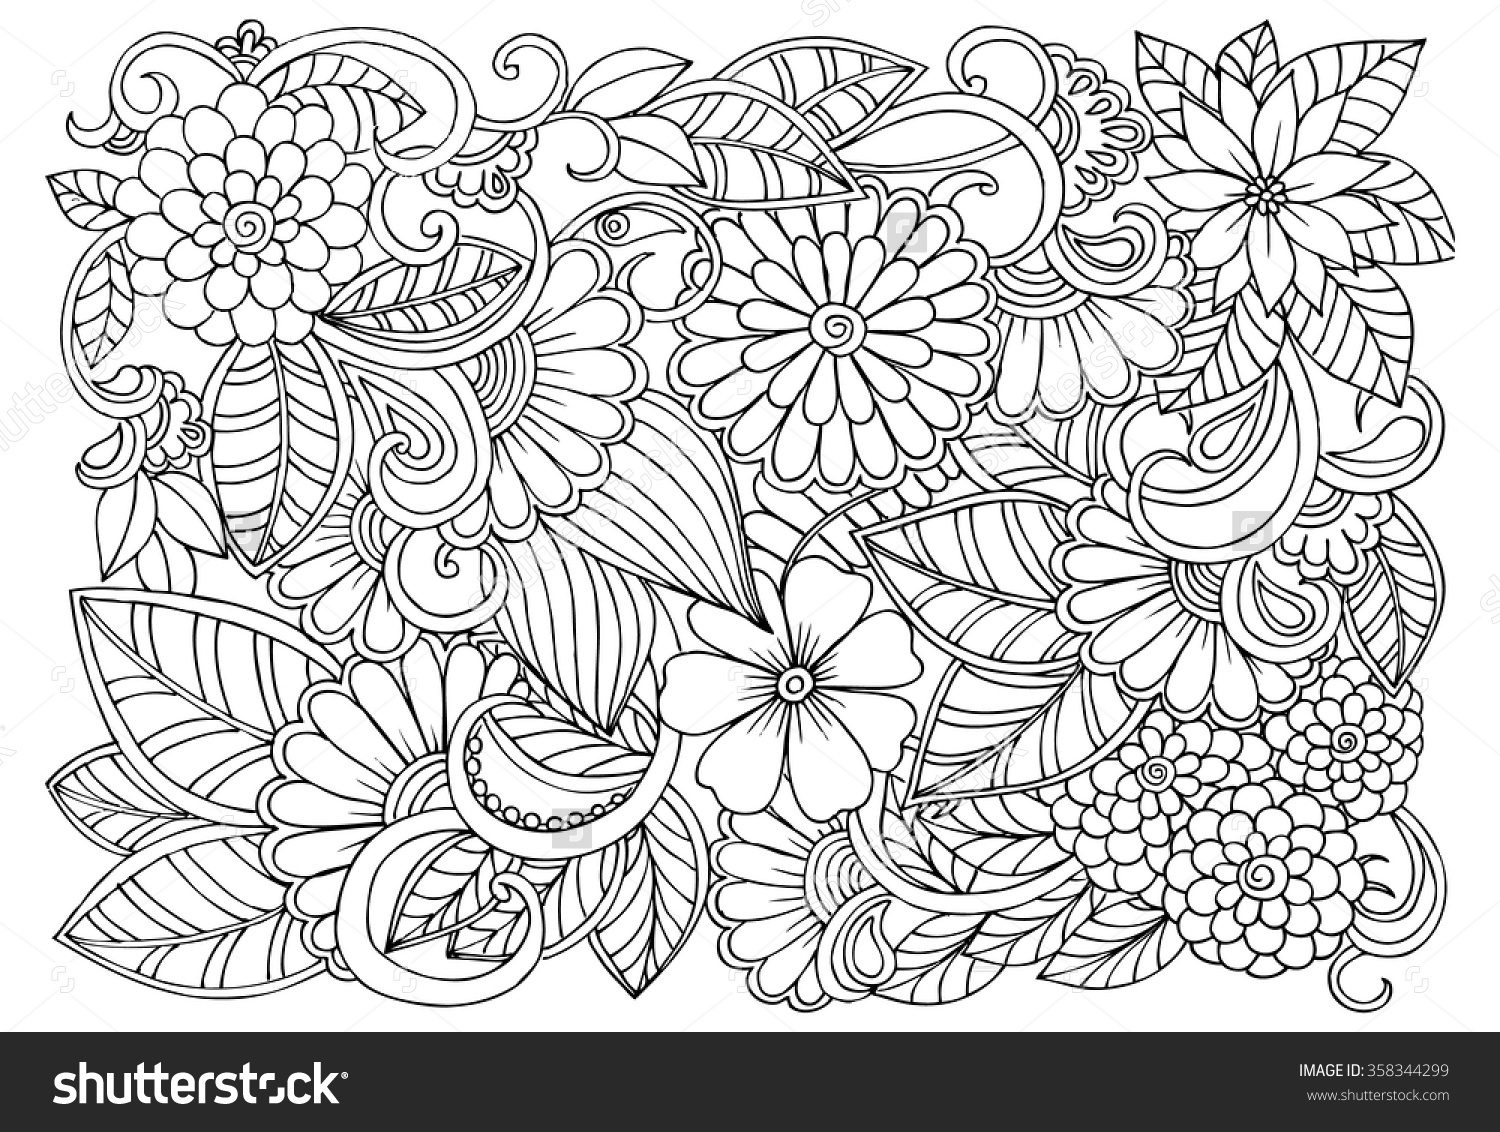 1500x1132 Coloring Pages Of Flower Designs With Within Pattern